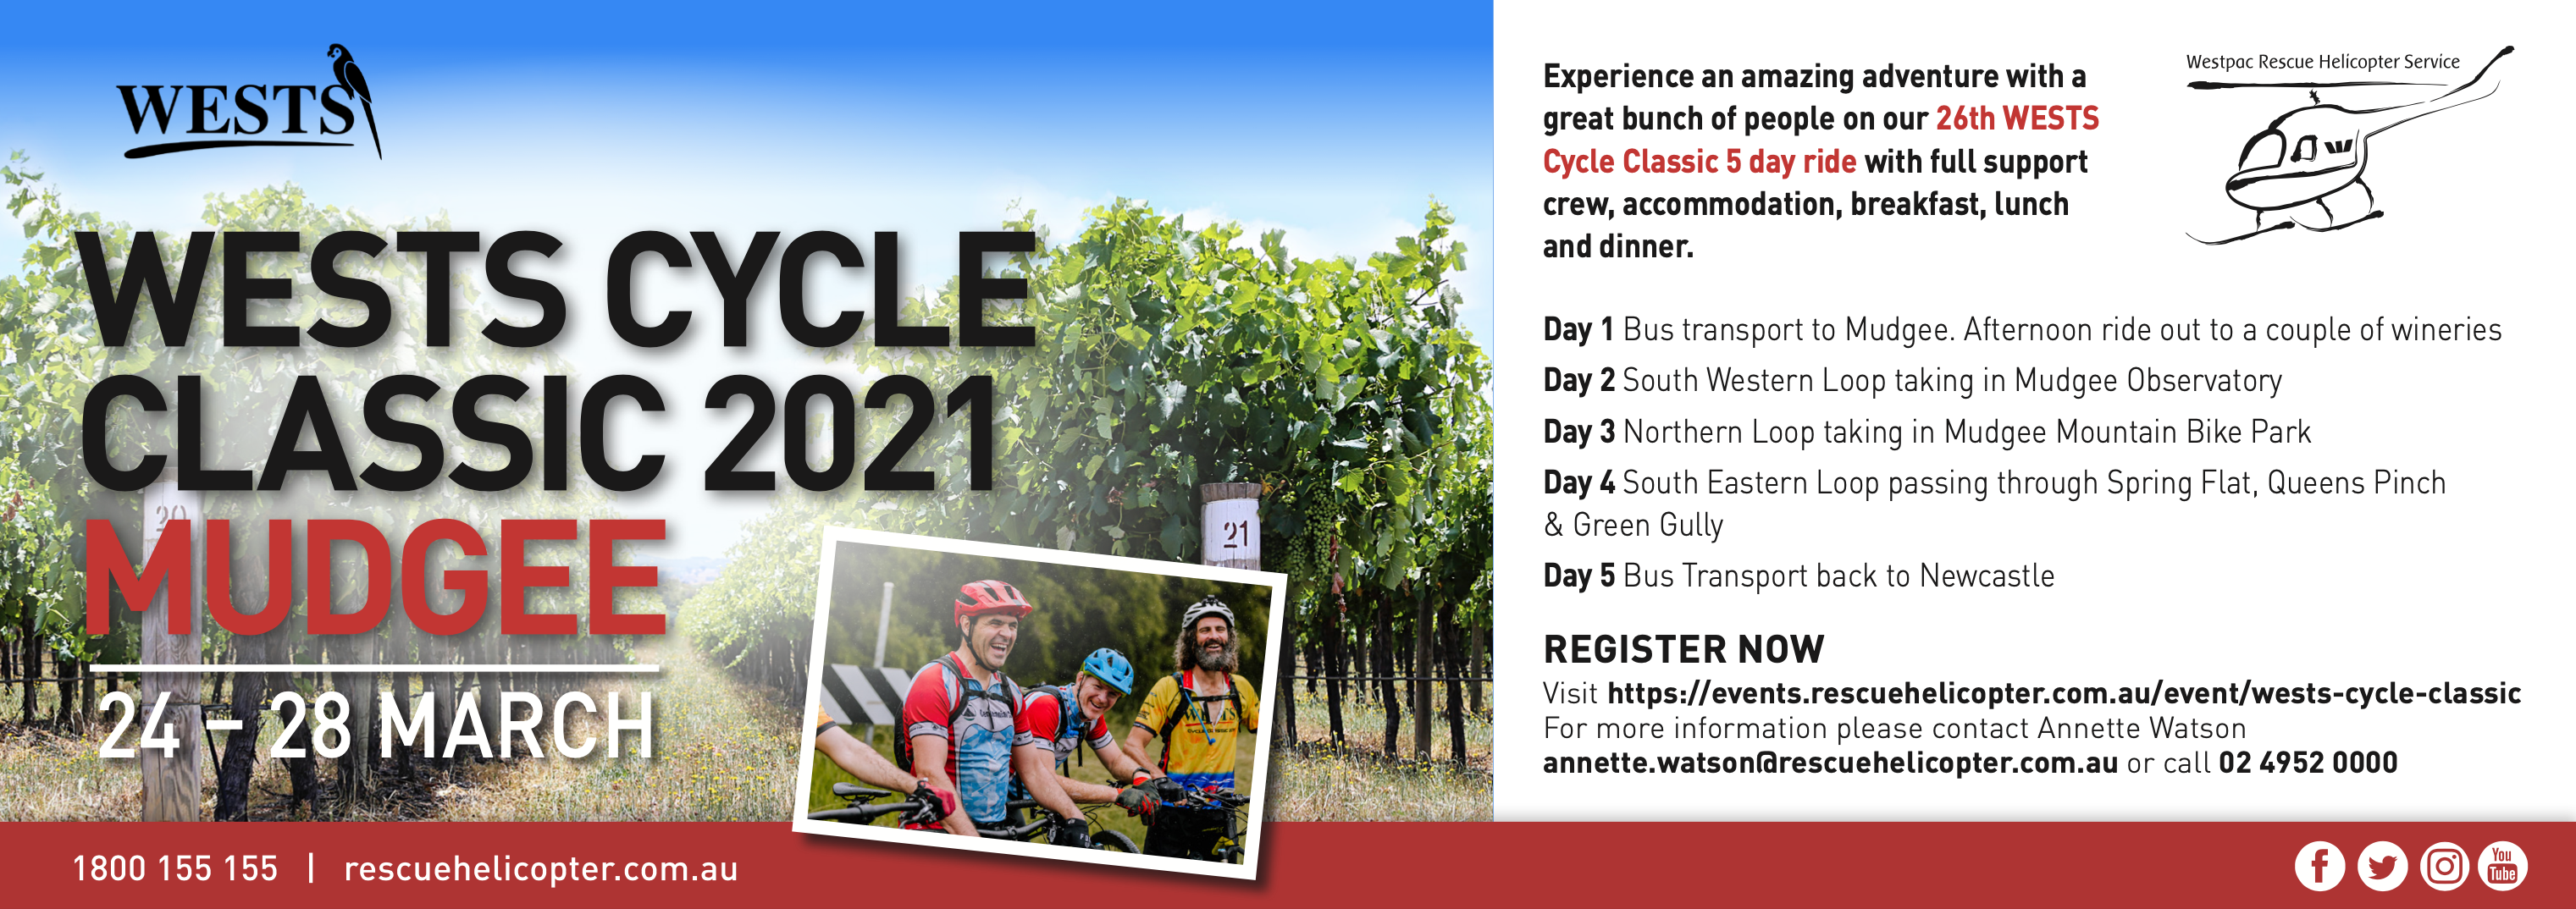 West's Cycle Classic T24 PDF